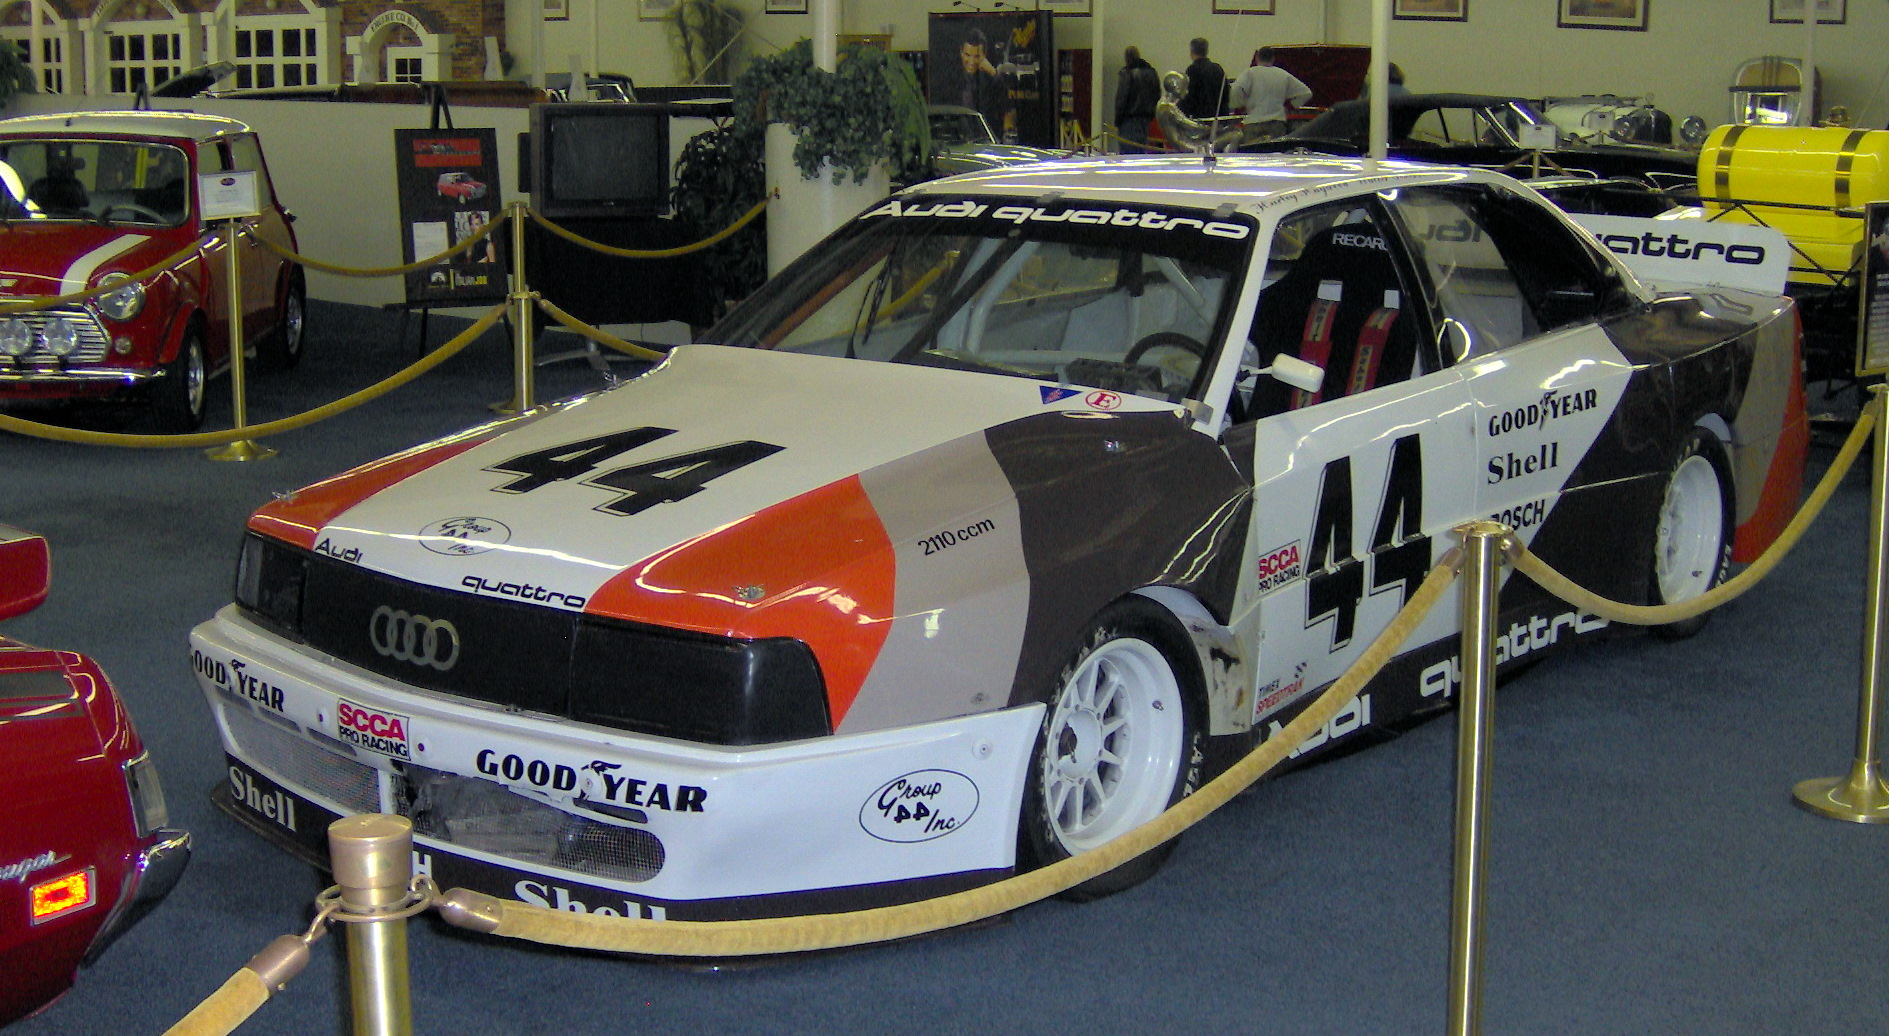 File:1989 Audi 200 Quattro Trans Am.JPG - Wikipedia, the free ...